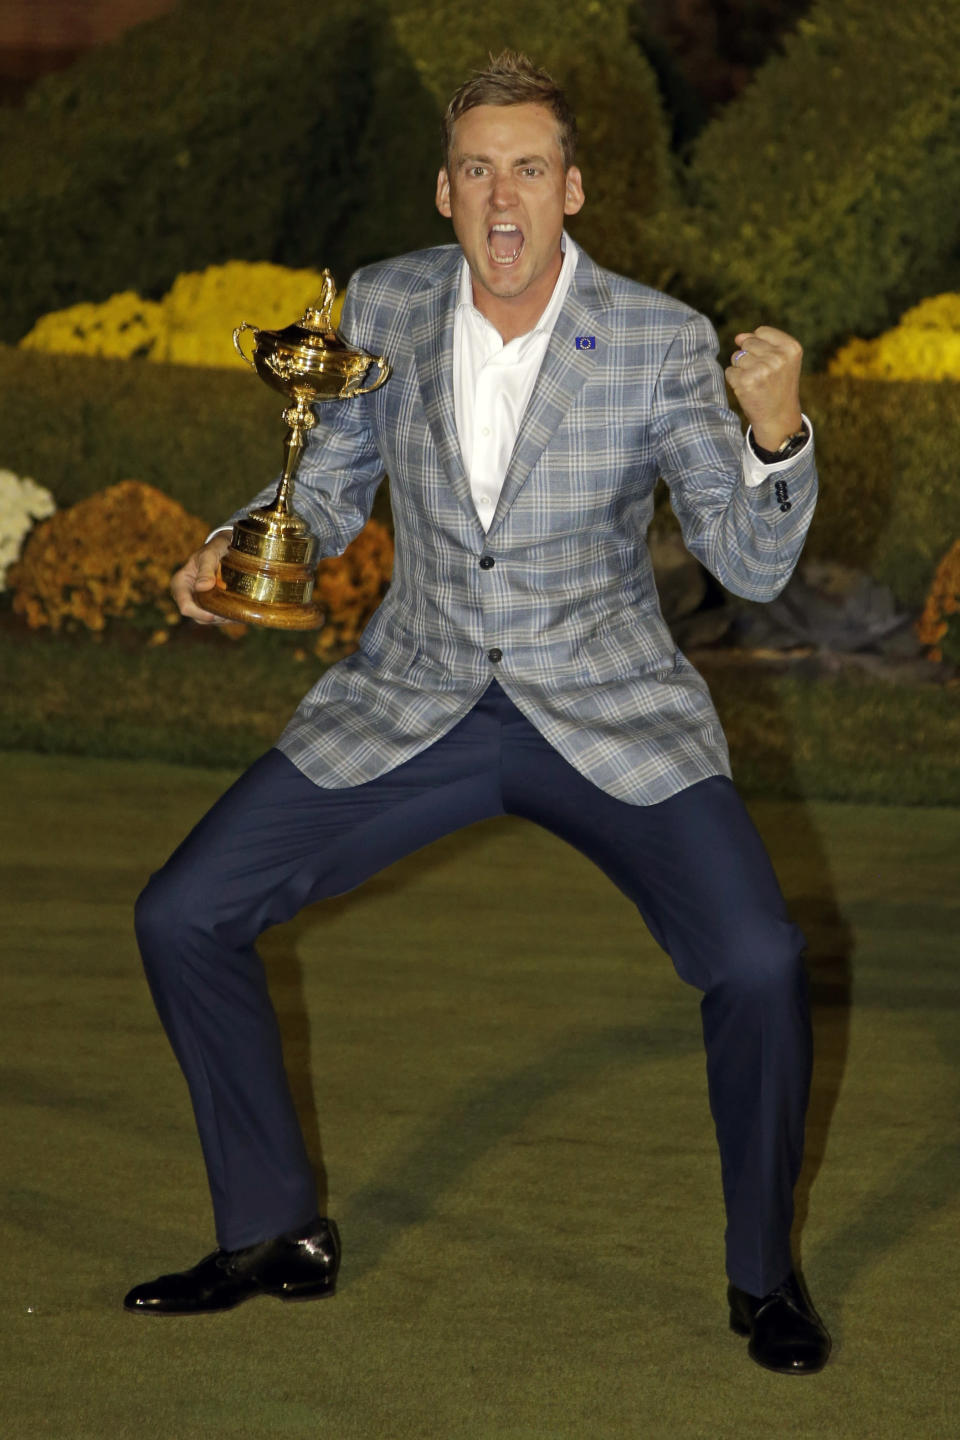 FILE - Europe's Ian Poulter celebrates with the trophy after winning the Ryder Cup PGA golf tournament at the Medinah Country Club in Medinah, Ill., in this Sept. 30, 2012, file photo. Poulter is 14-6-2 in his previous six Ryder Cups. He is 5-0-1 in singles. He has been on five winning teams and only one loser. (AP Photo/Chris Carlson, File)